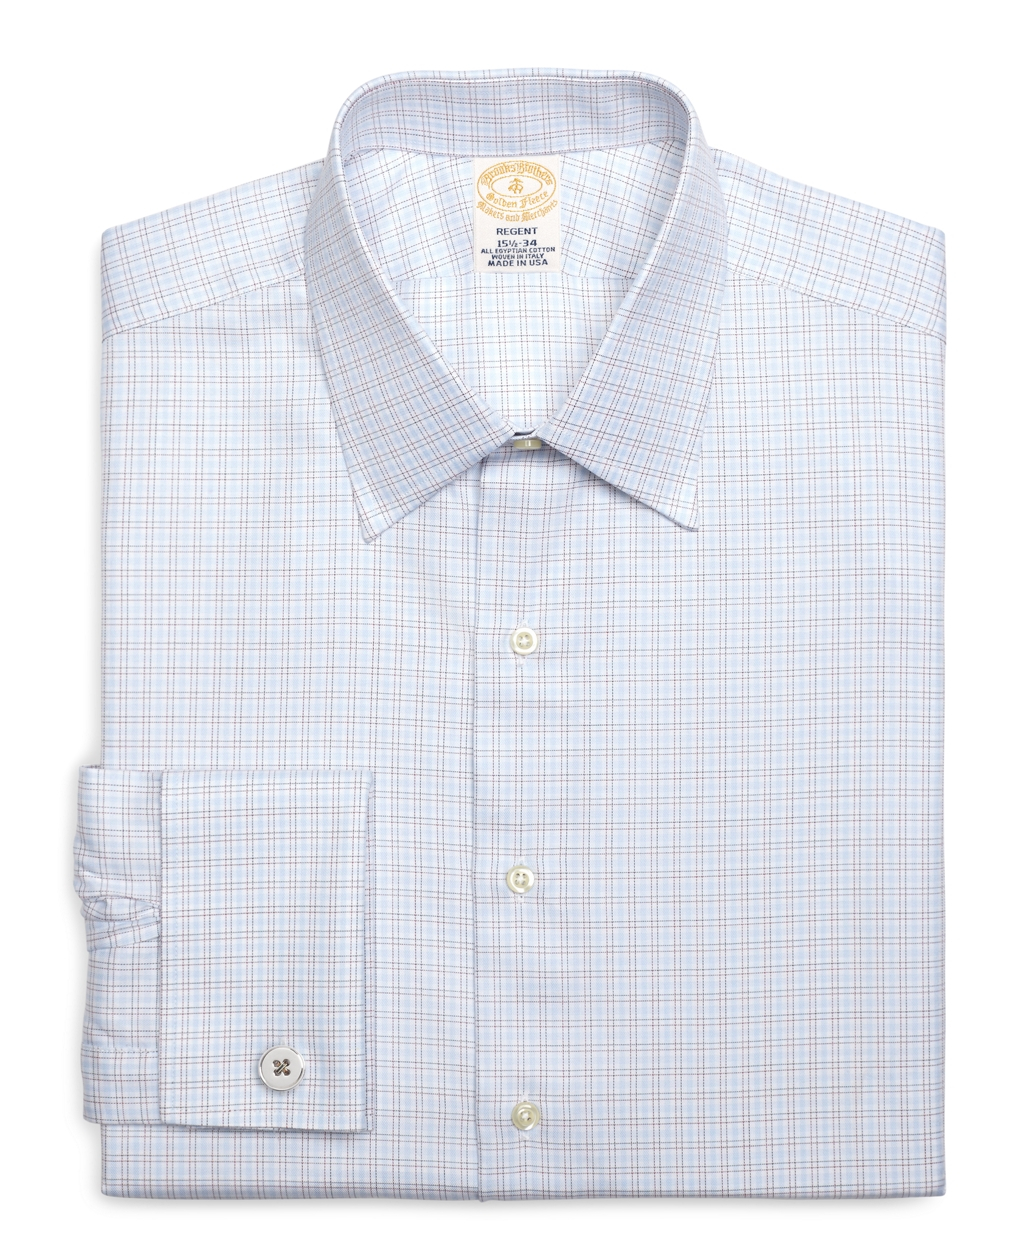 Brooks brothers regent fit twin check french cuff dress for Brooks brothers dress shirt fit guide